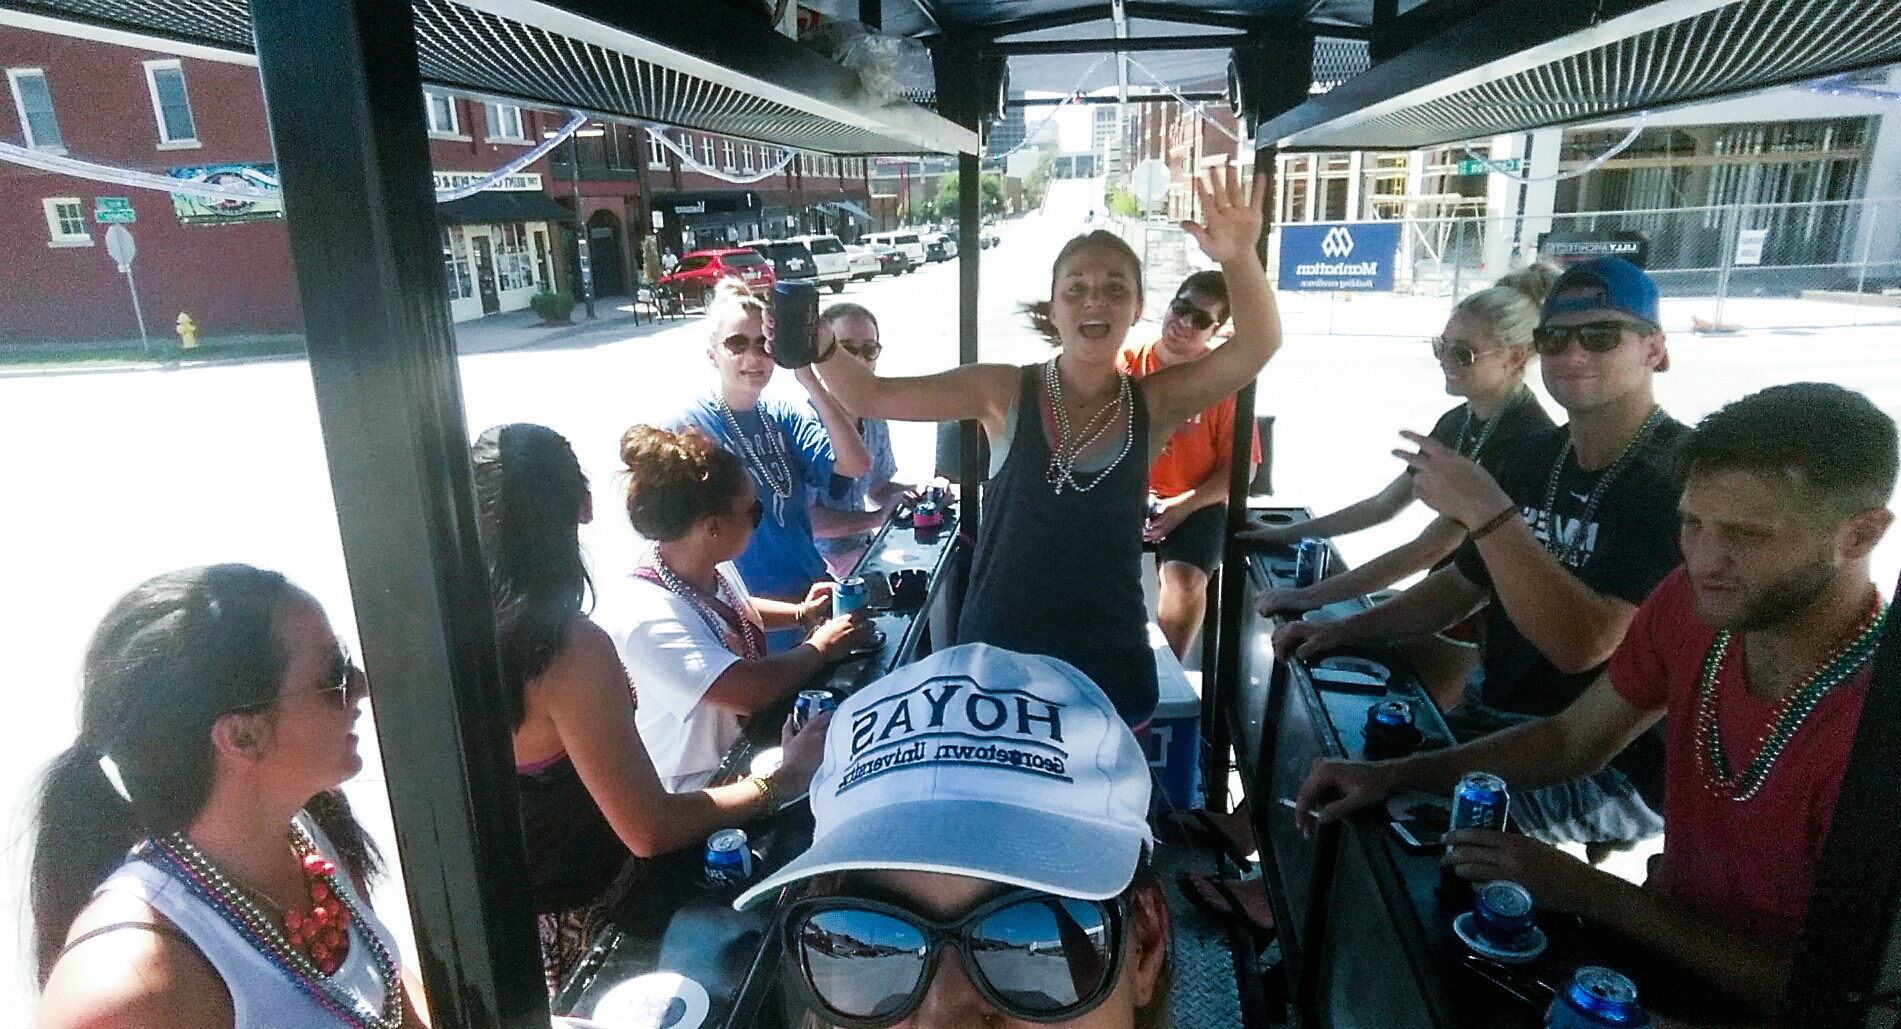 Home | Bike Bar Tours Houston